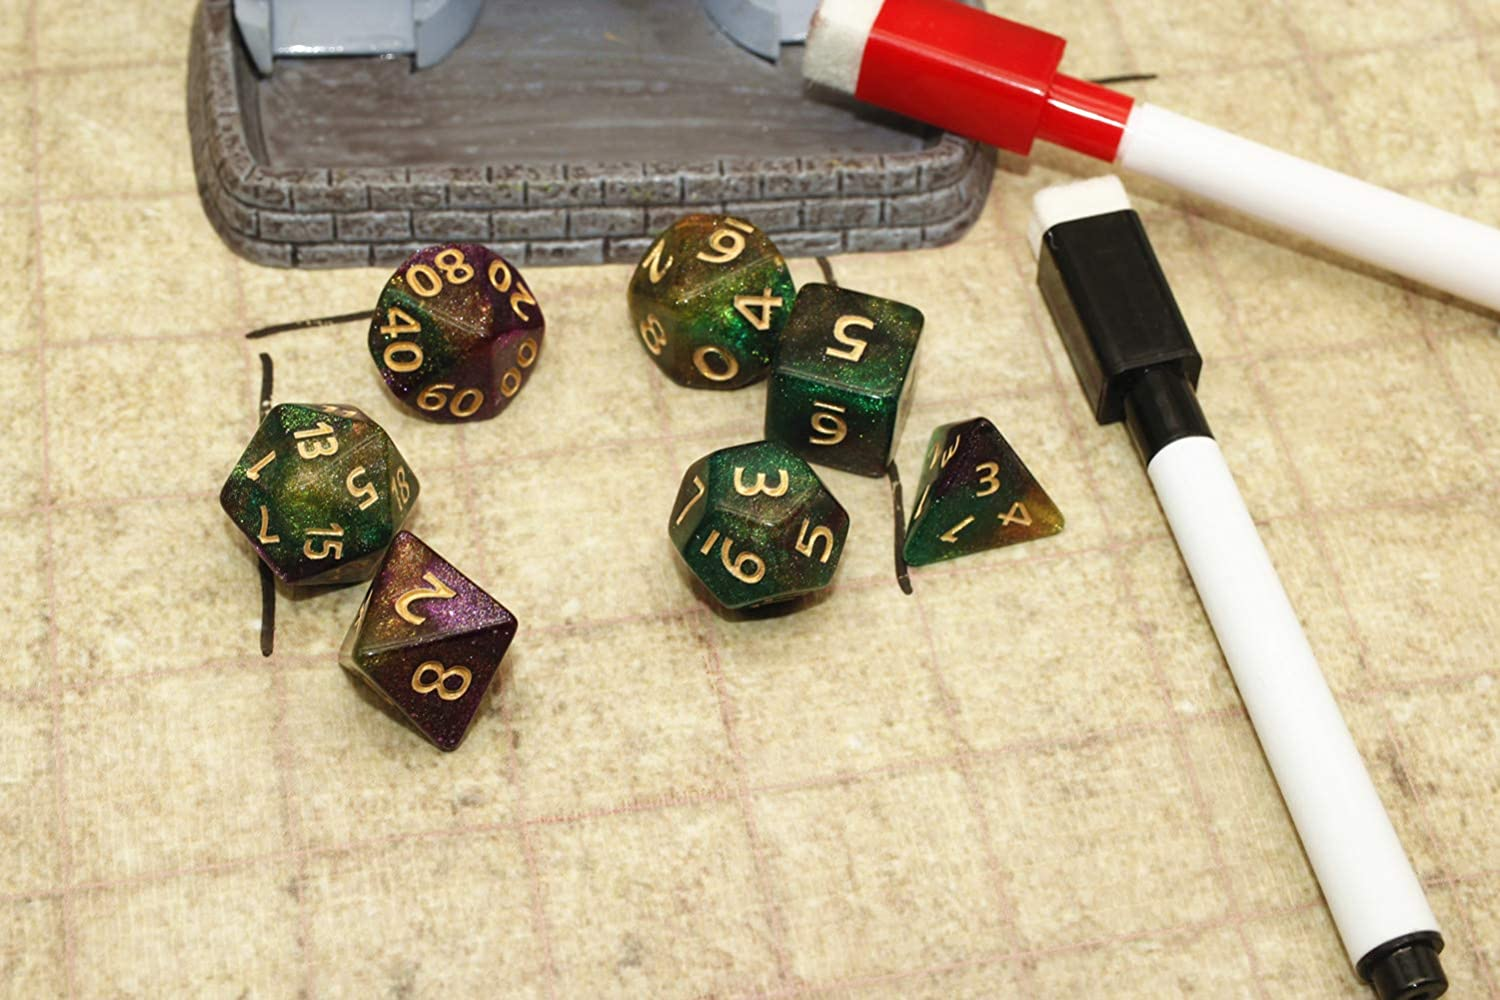 Red /& Blue HD Dice DND RPG Polyhedral Dice Set Fit Dungeons and Dragons D/&D Pathfinder Role Playing Games